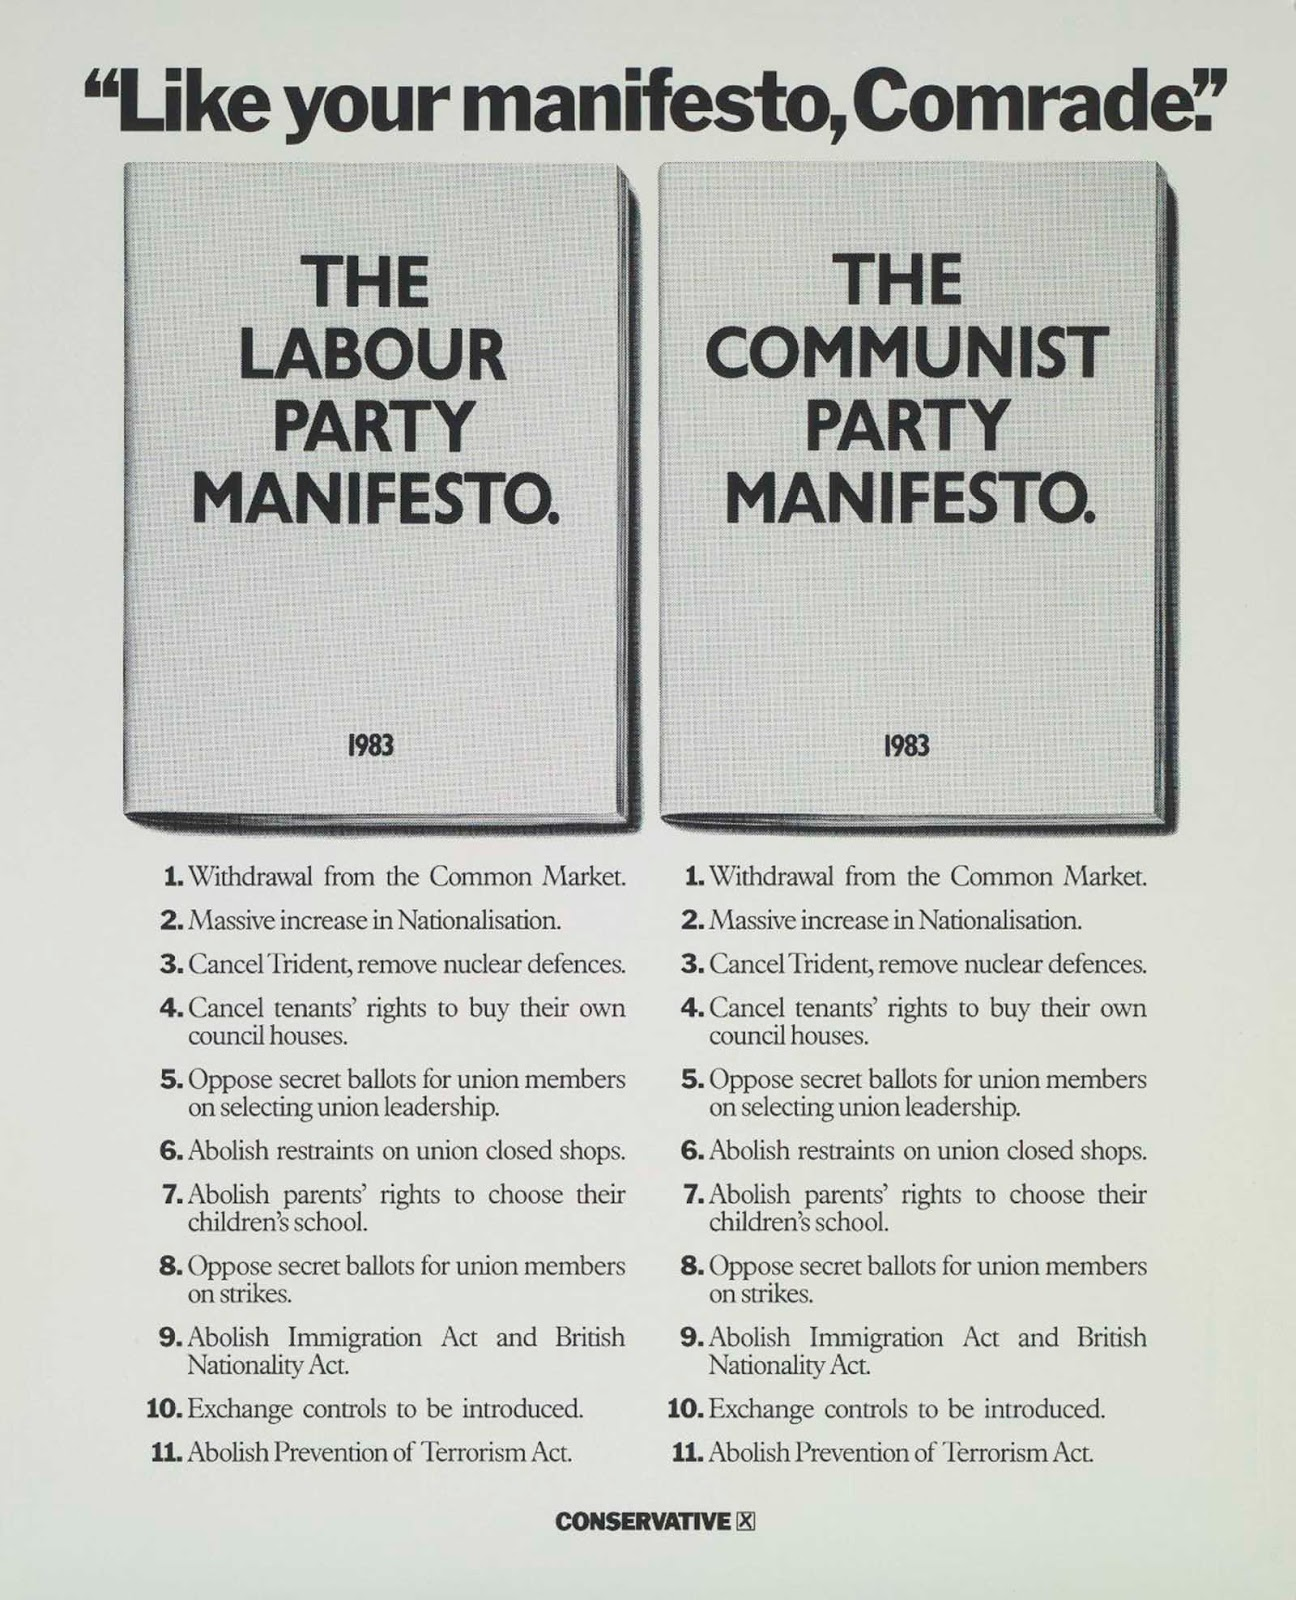 A poster for the British Conservative Party from the 1983 General Election. It compares the Labour Party Manifesto to the Communist Party Manifesto, with the caption 'Like your manifesto, Comrade'. 1983.